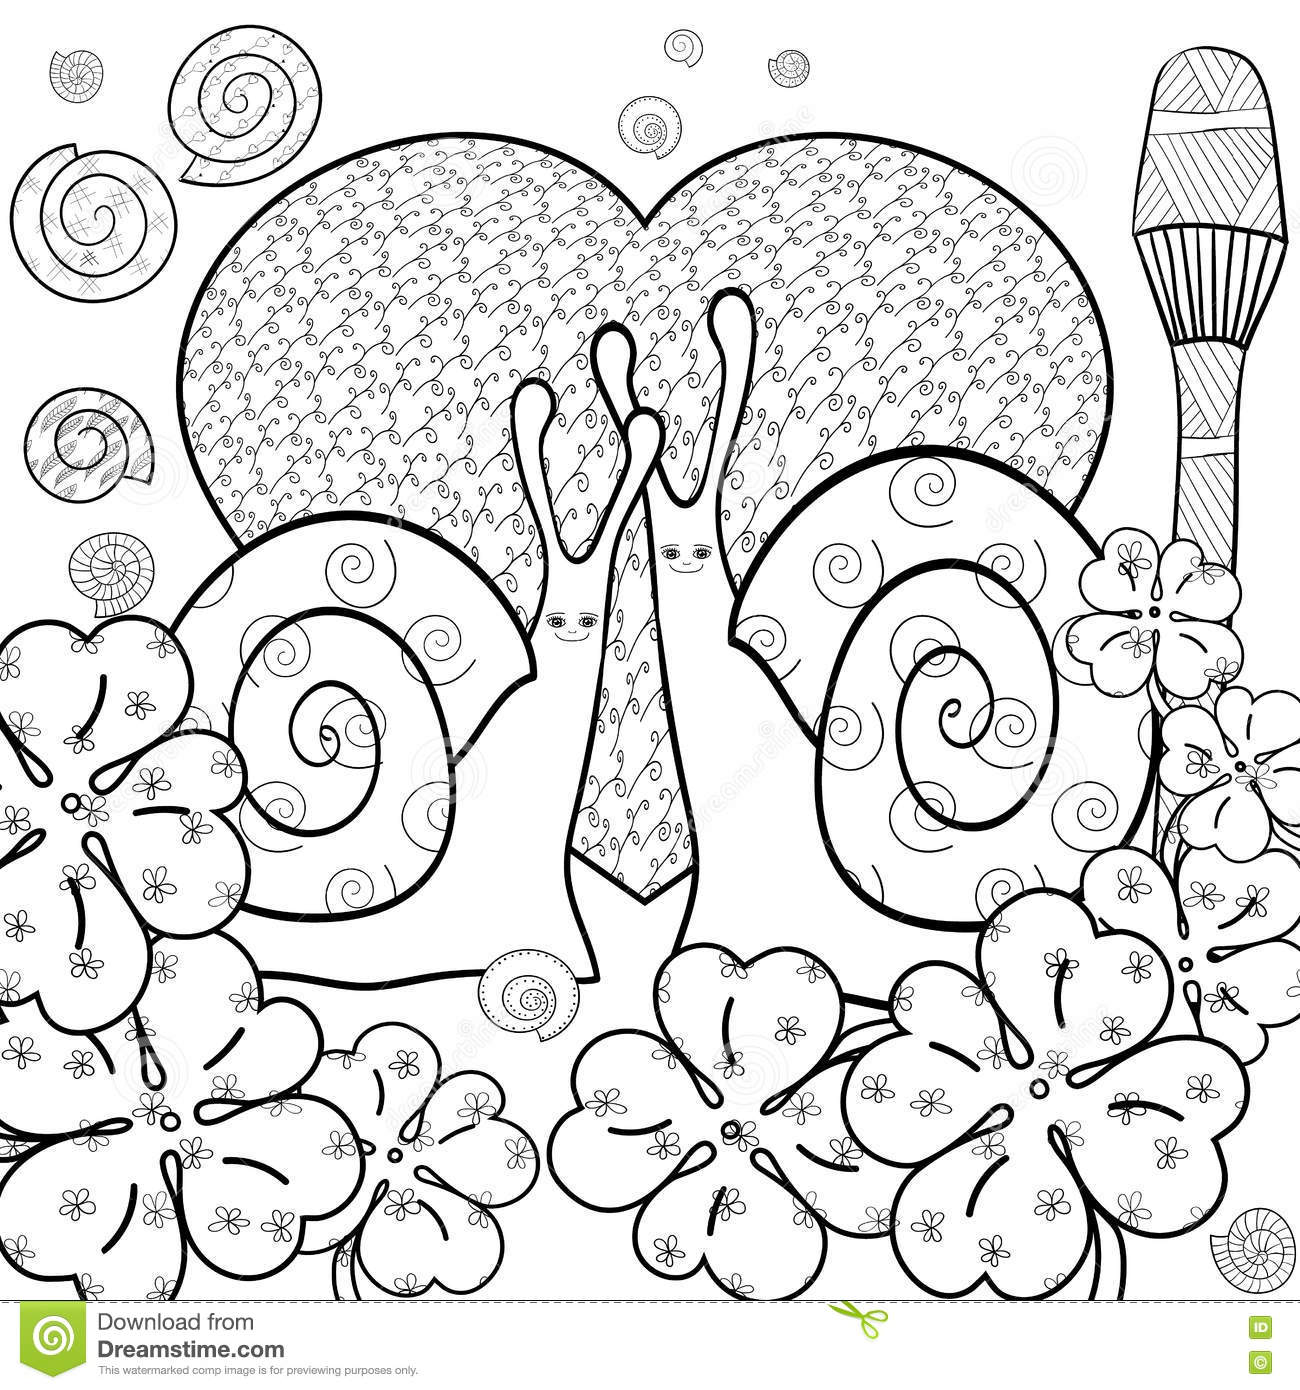 Whimsical designs coloring book - Adult Art Book Coloring